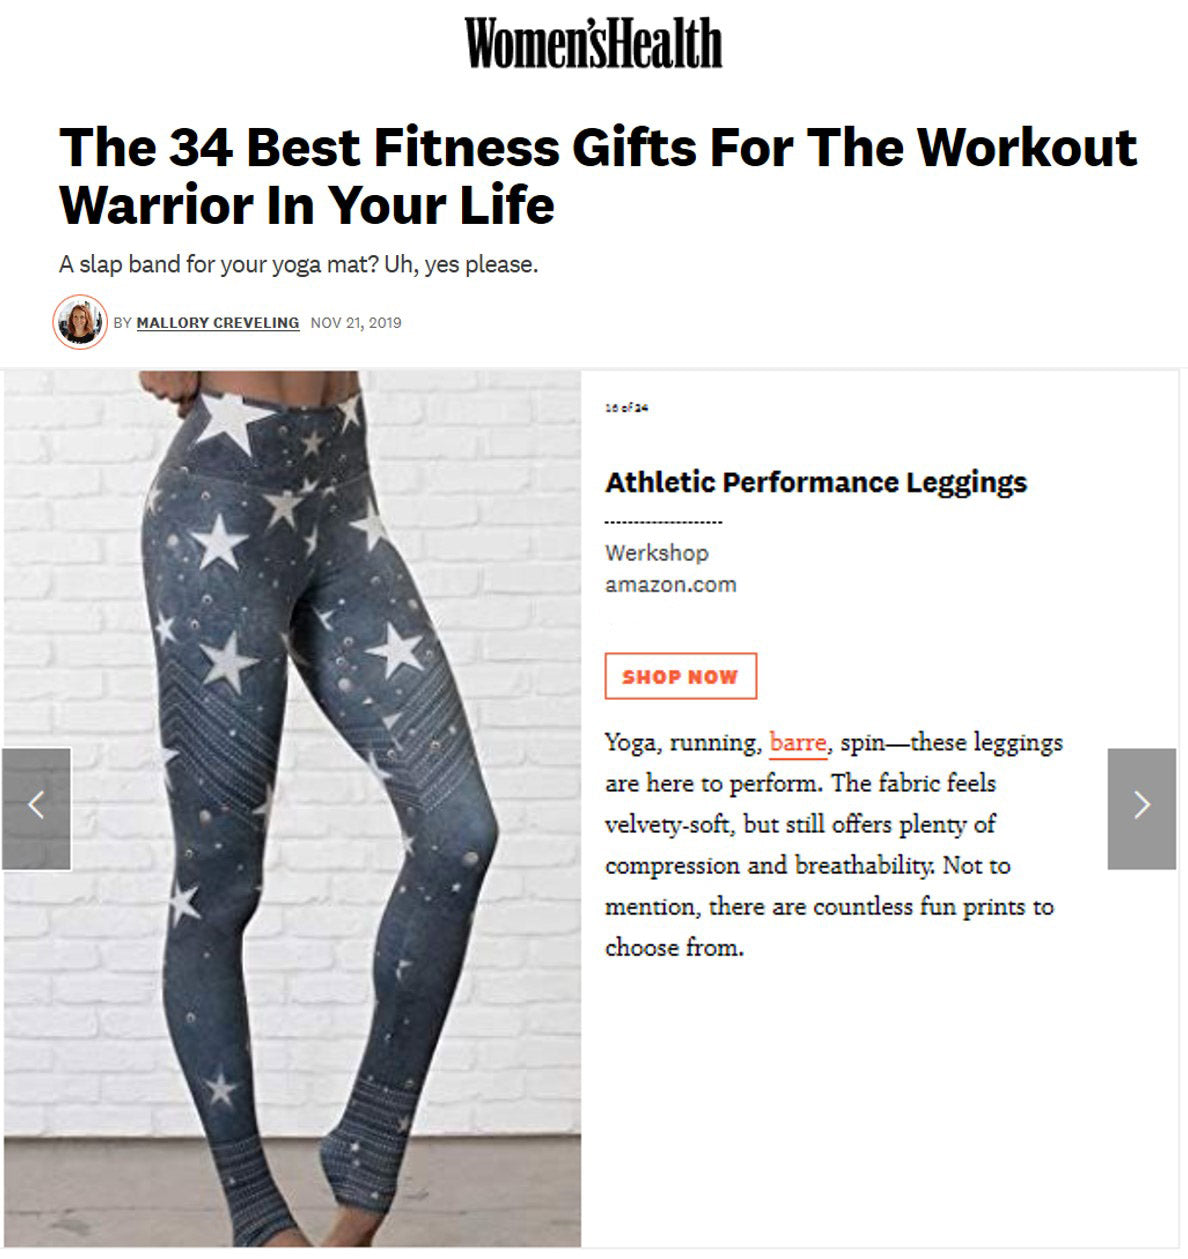 Best fitness gifts for the workout warrior in your life: featuring WERKSHOP Leatherwerk Stars